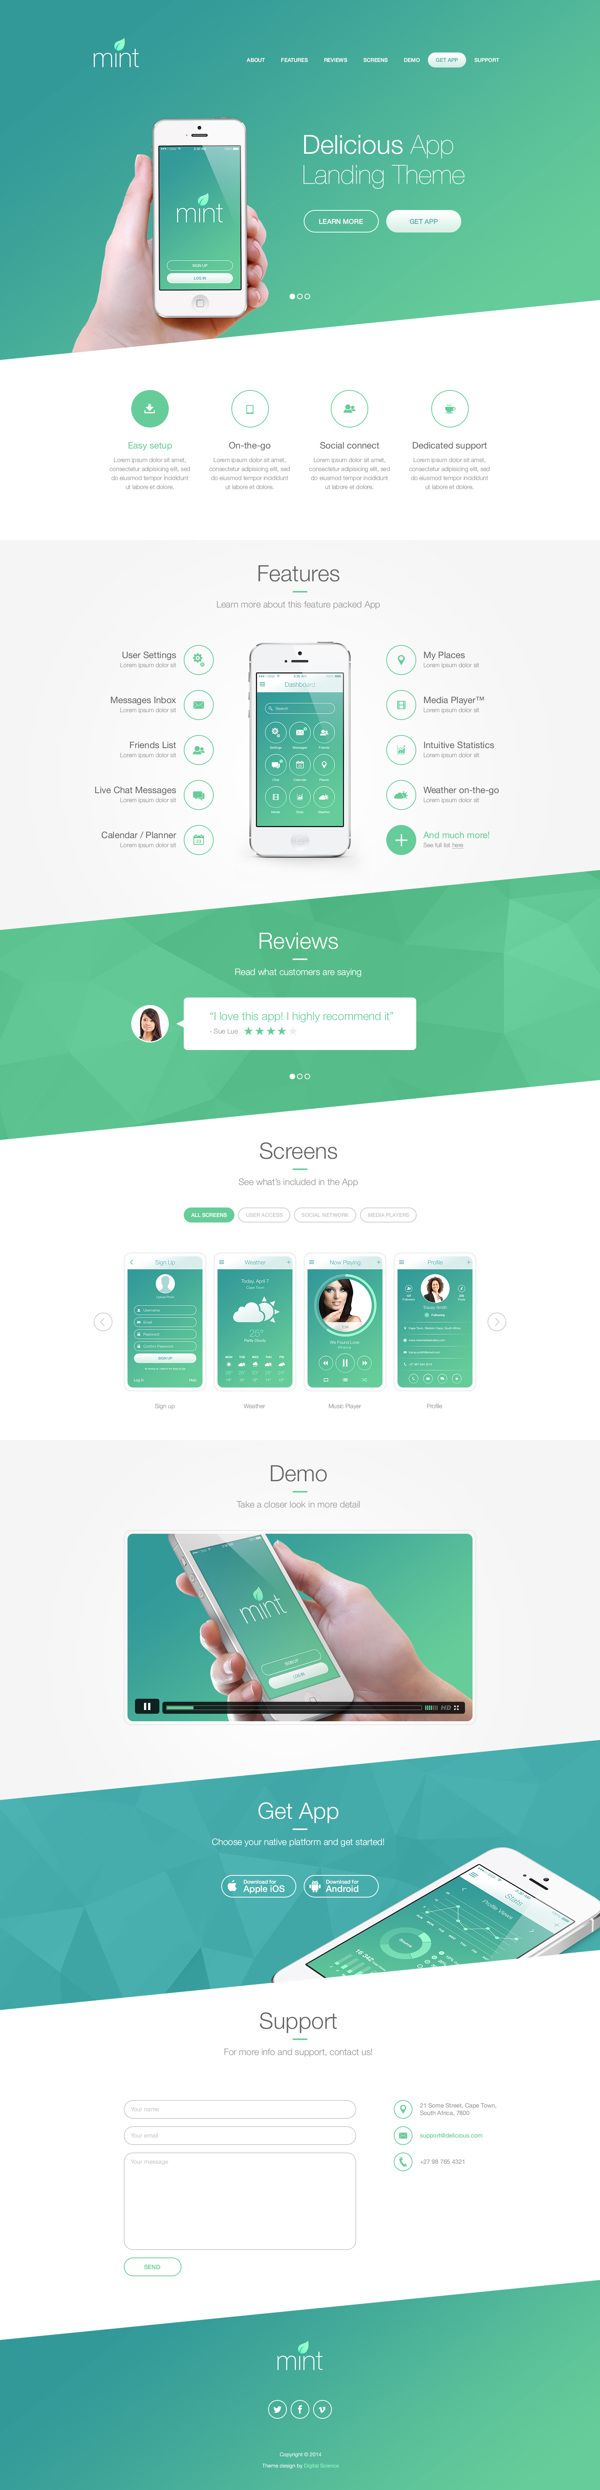 Delicious App Landing Theme by Pierre Marais via Behance